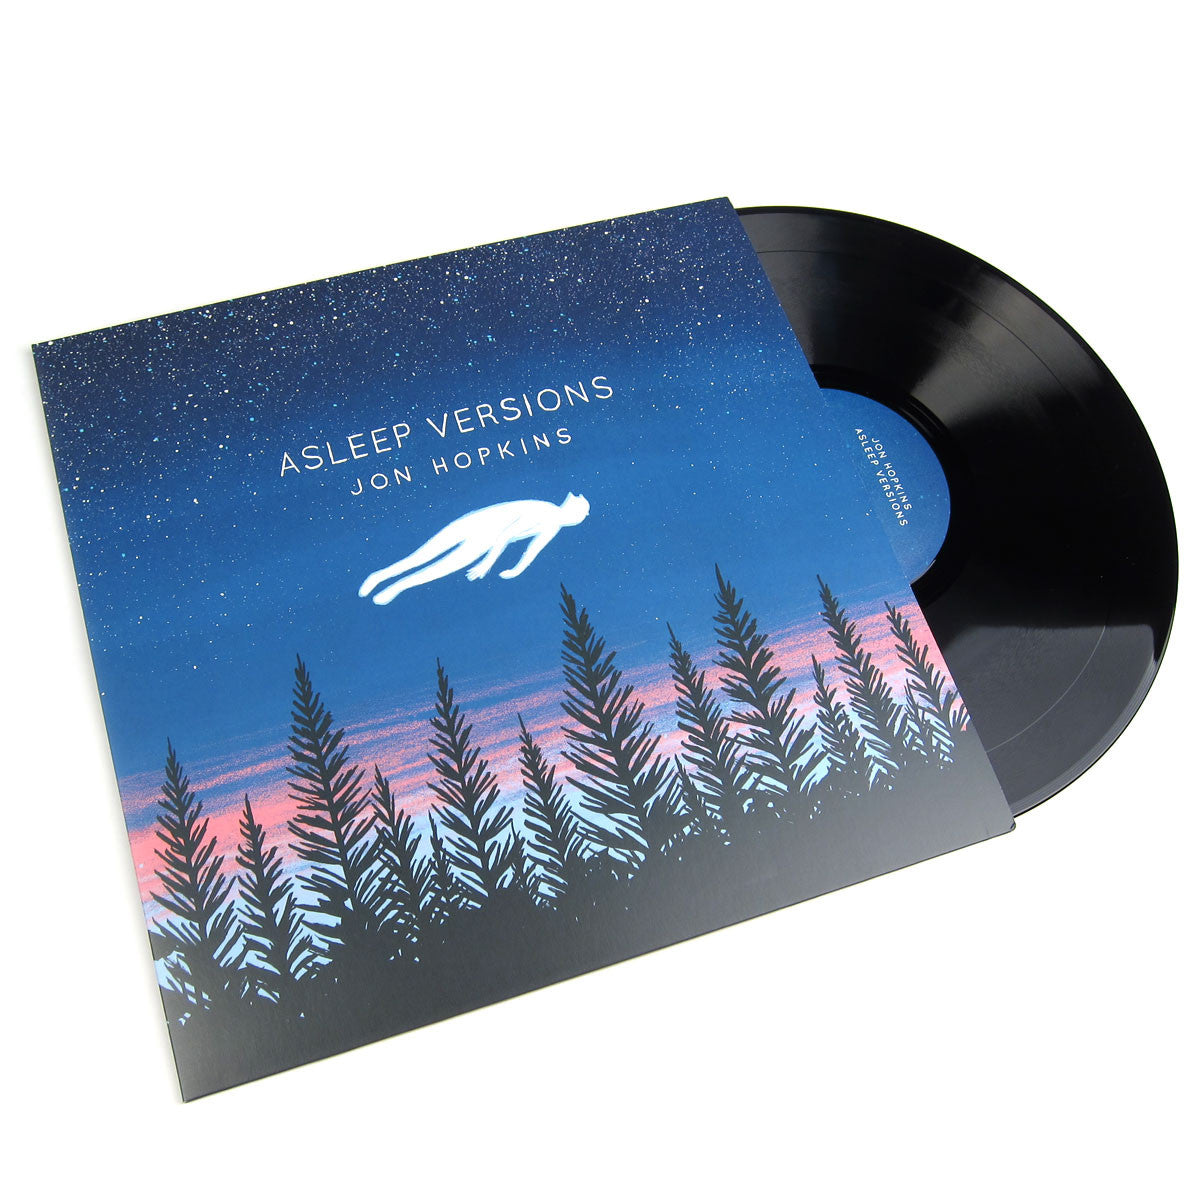 Jon Hopkins: Asleep Versions (180g, Free MP3) Vinyl 12""